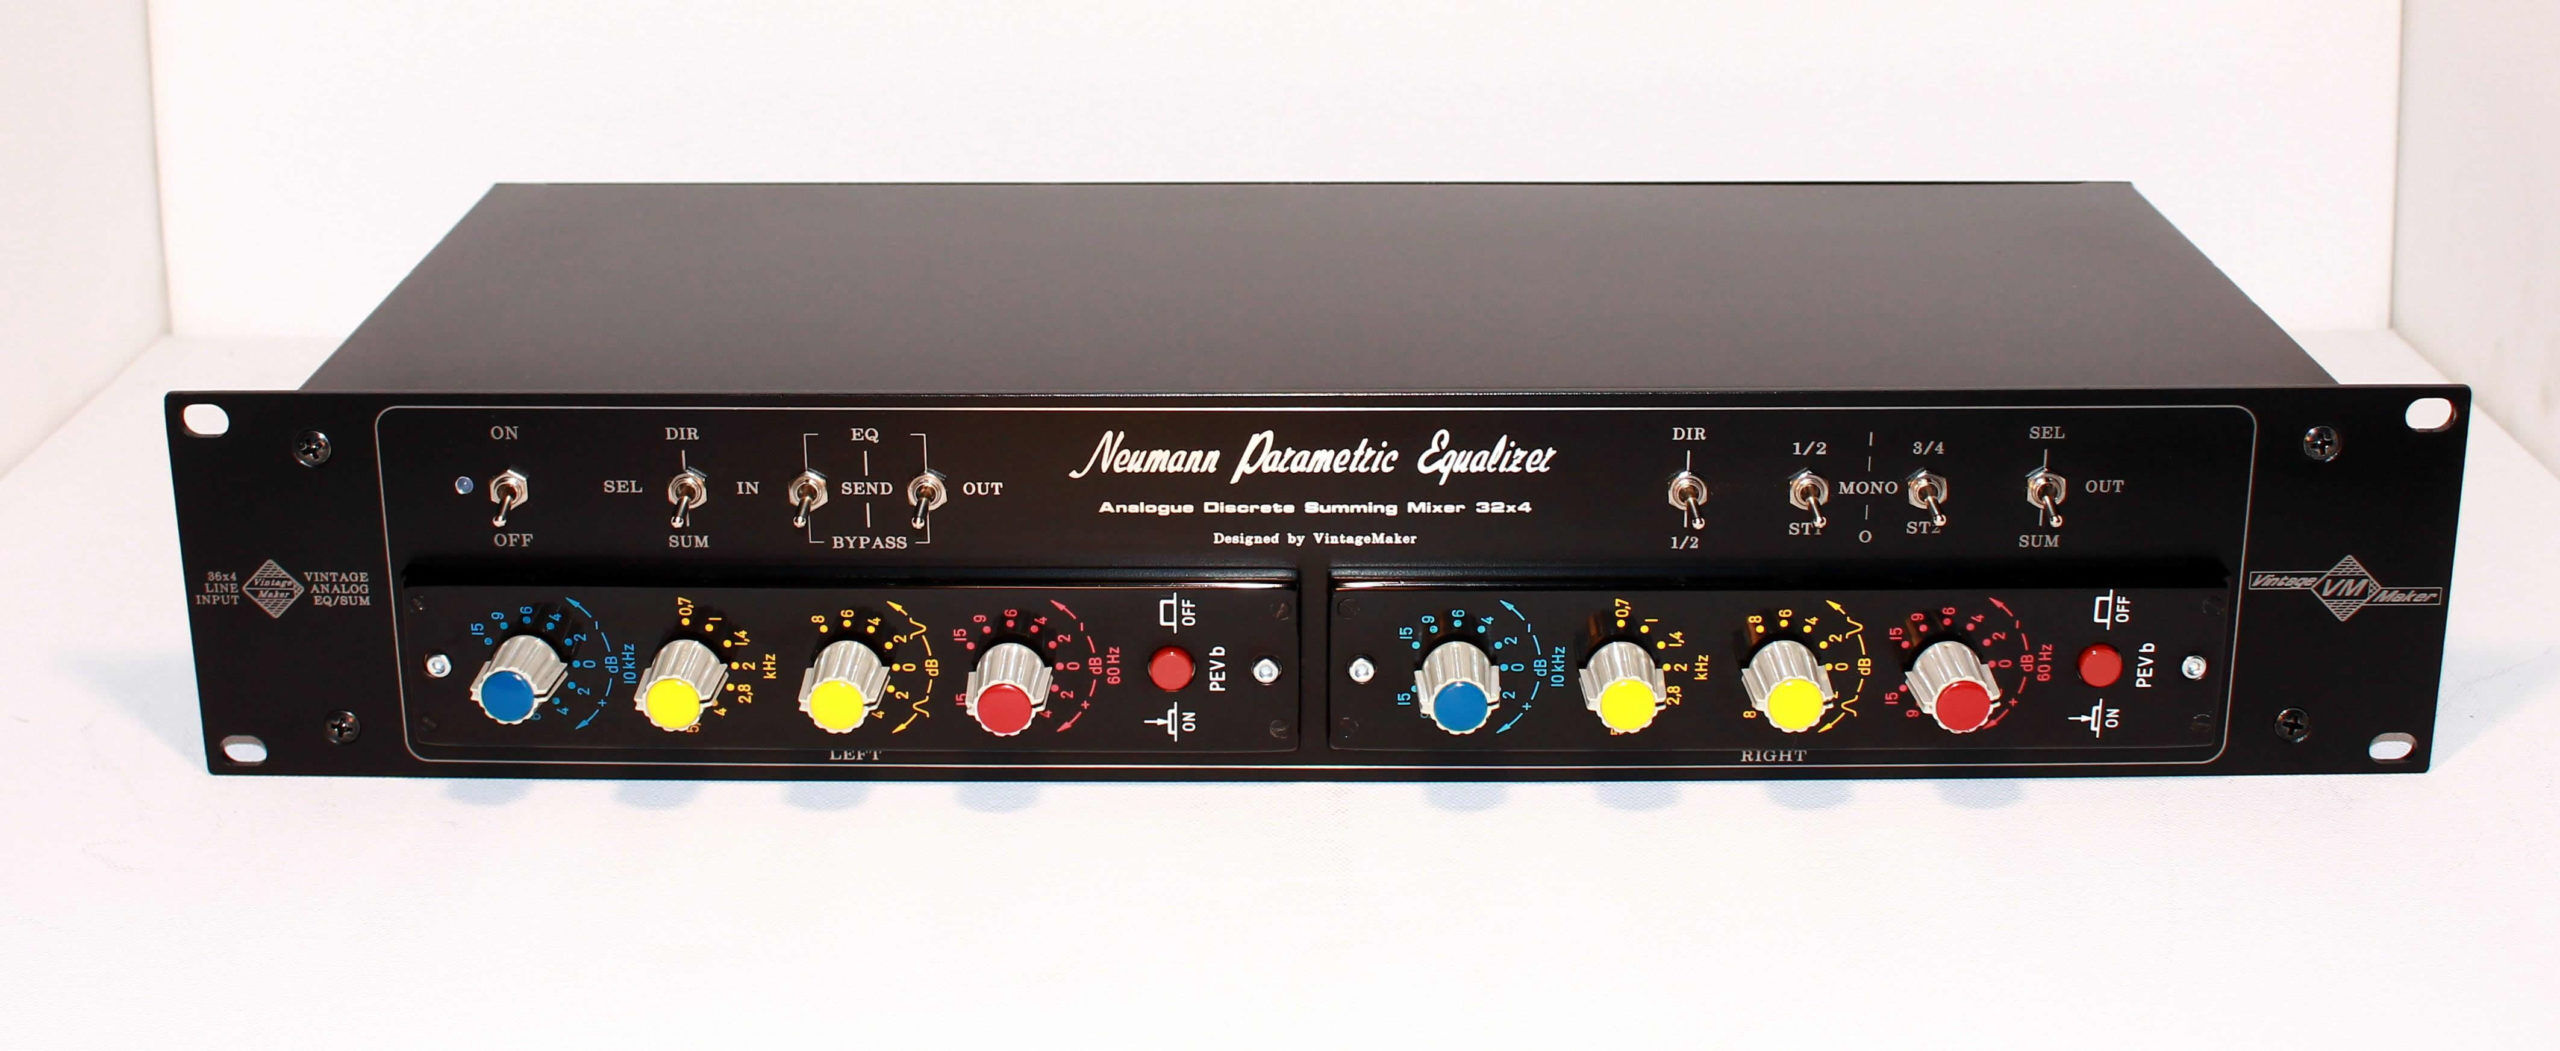 Neumann PEV-b – the cream of the Neumann EQ's